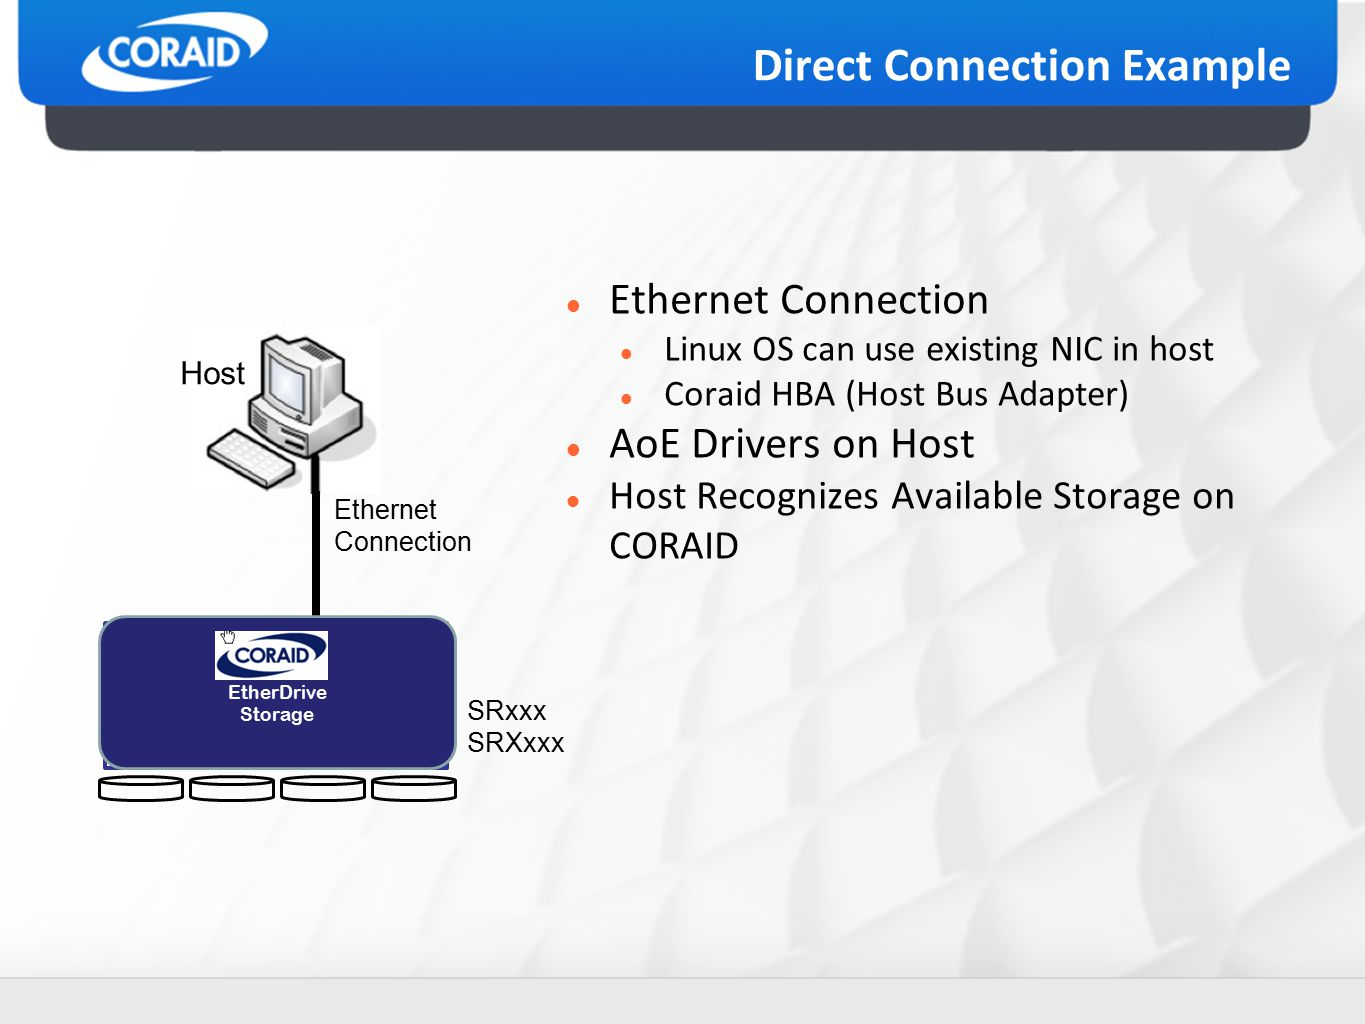 Direct Connection Example Ethernet Connection Linux OS can use existing NIC in host Coraid HBA (Host Bus Adapter) AoE Drivers on Host Host Recognizes Available Storage on CORAID Ethernet Connection Host SRxxx SRXxxx EtherDrive Storage